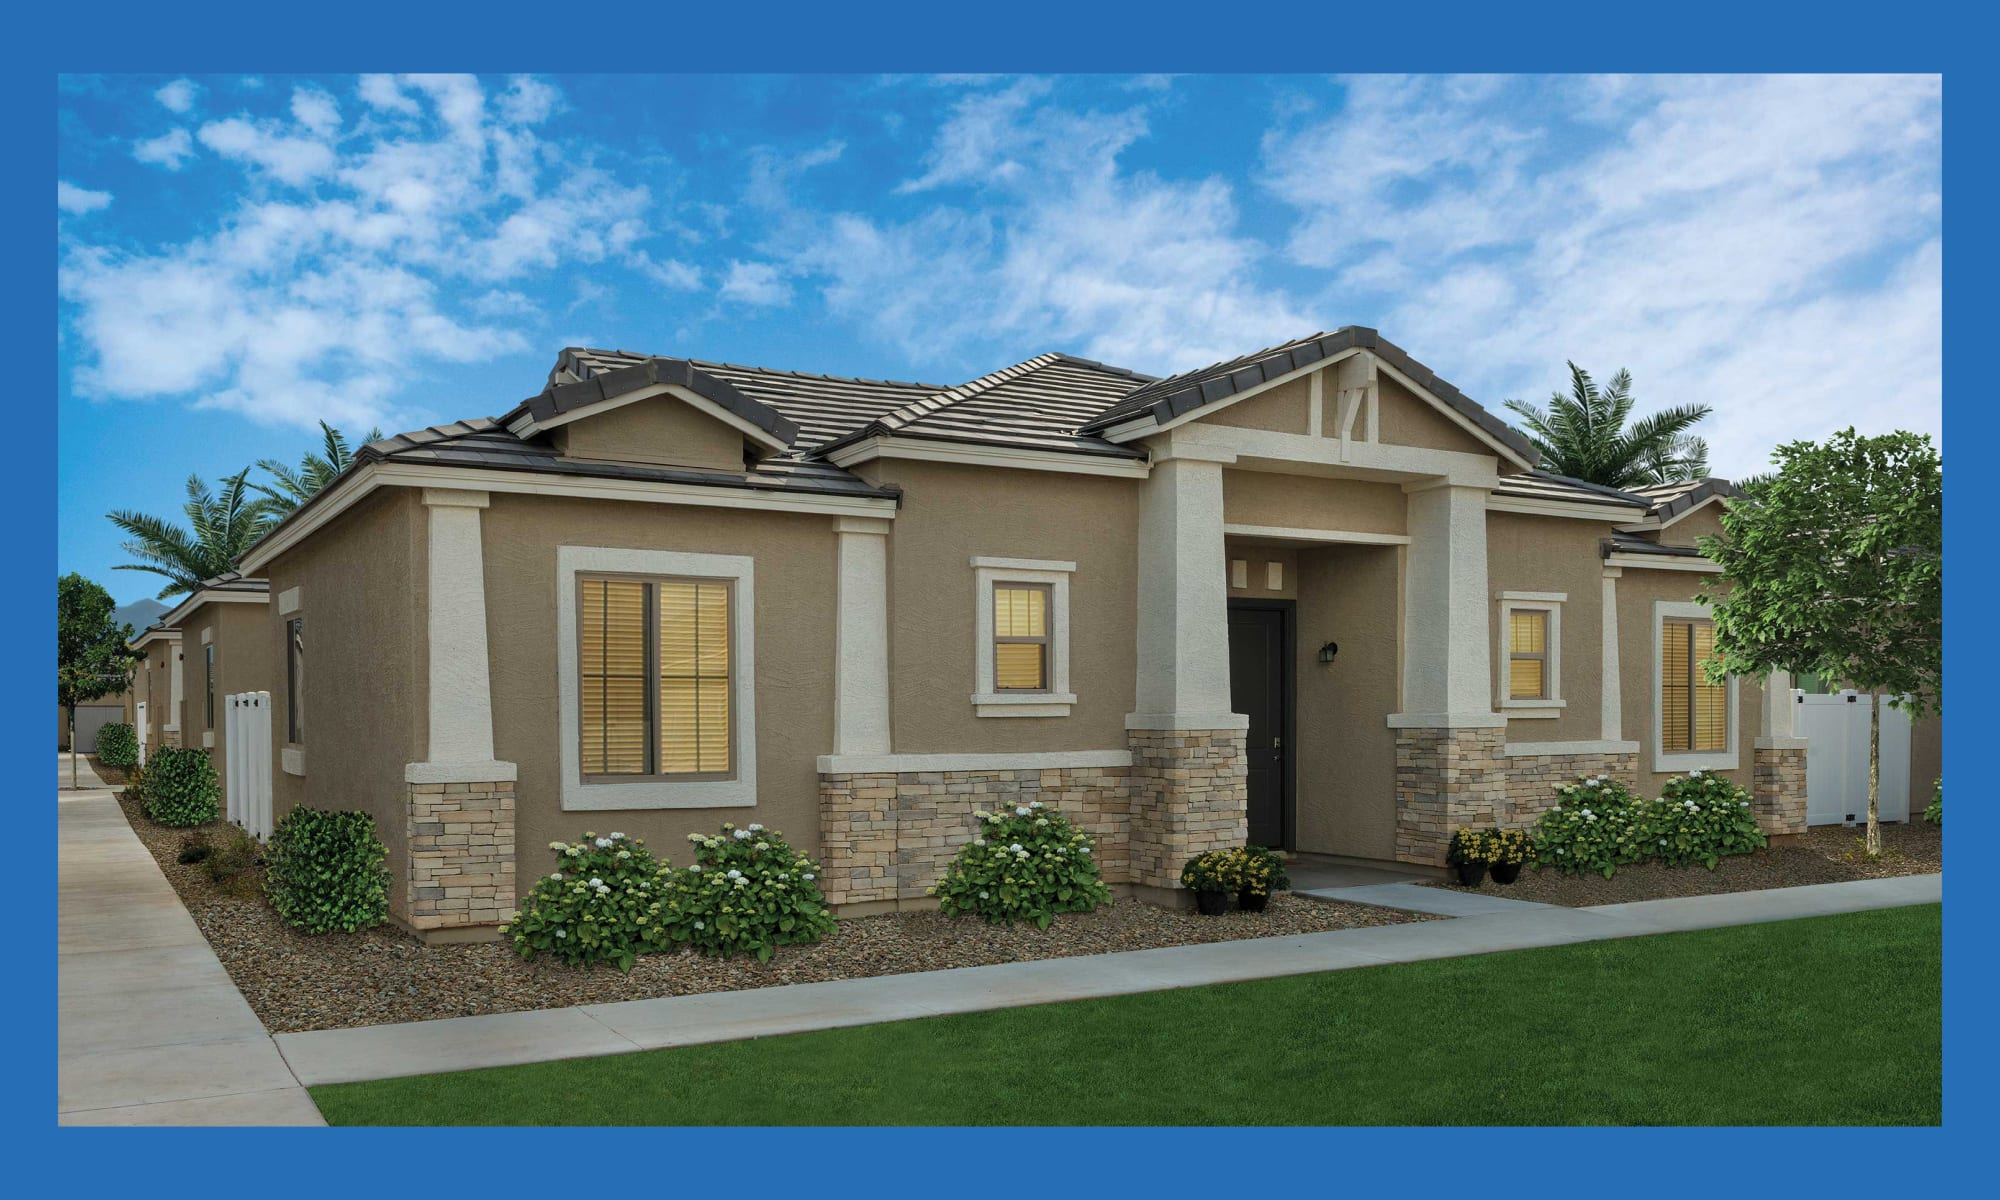 Apartments at Christopher Todd Communities At Marley Park in Surprise, Arizona